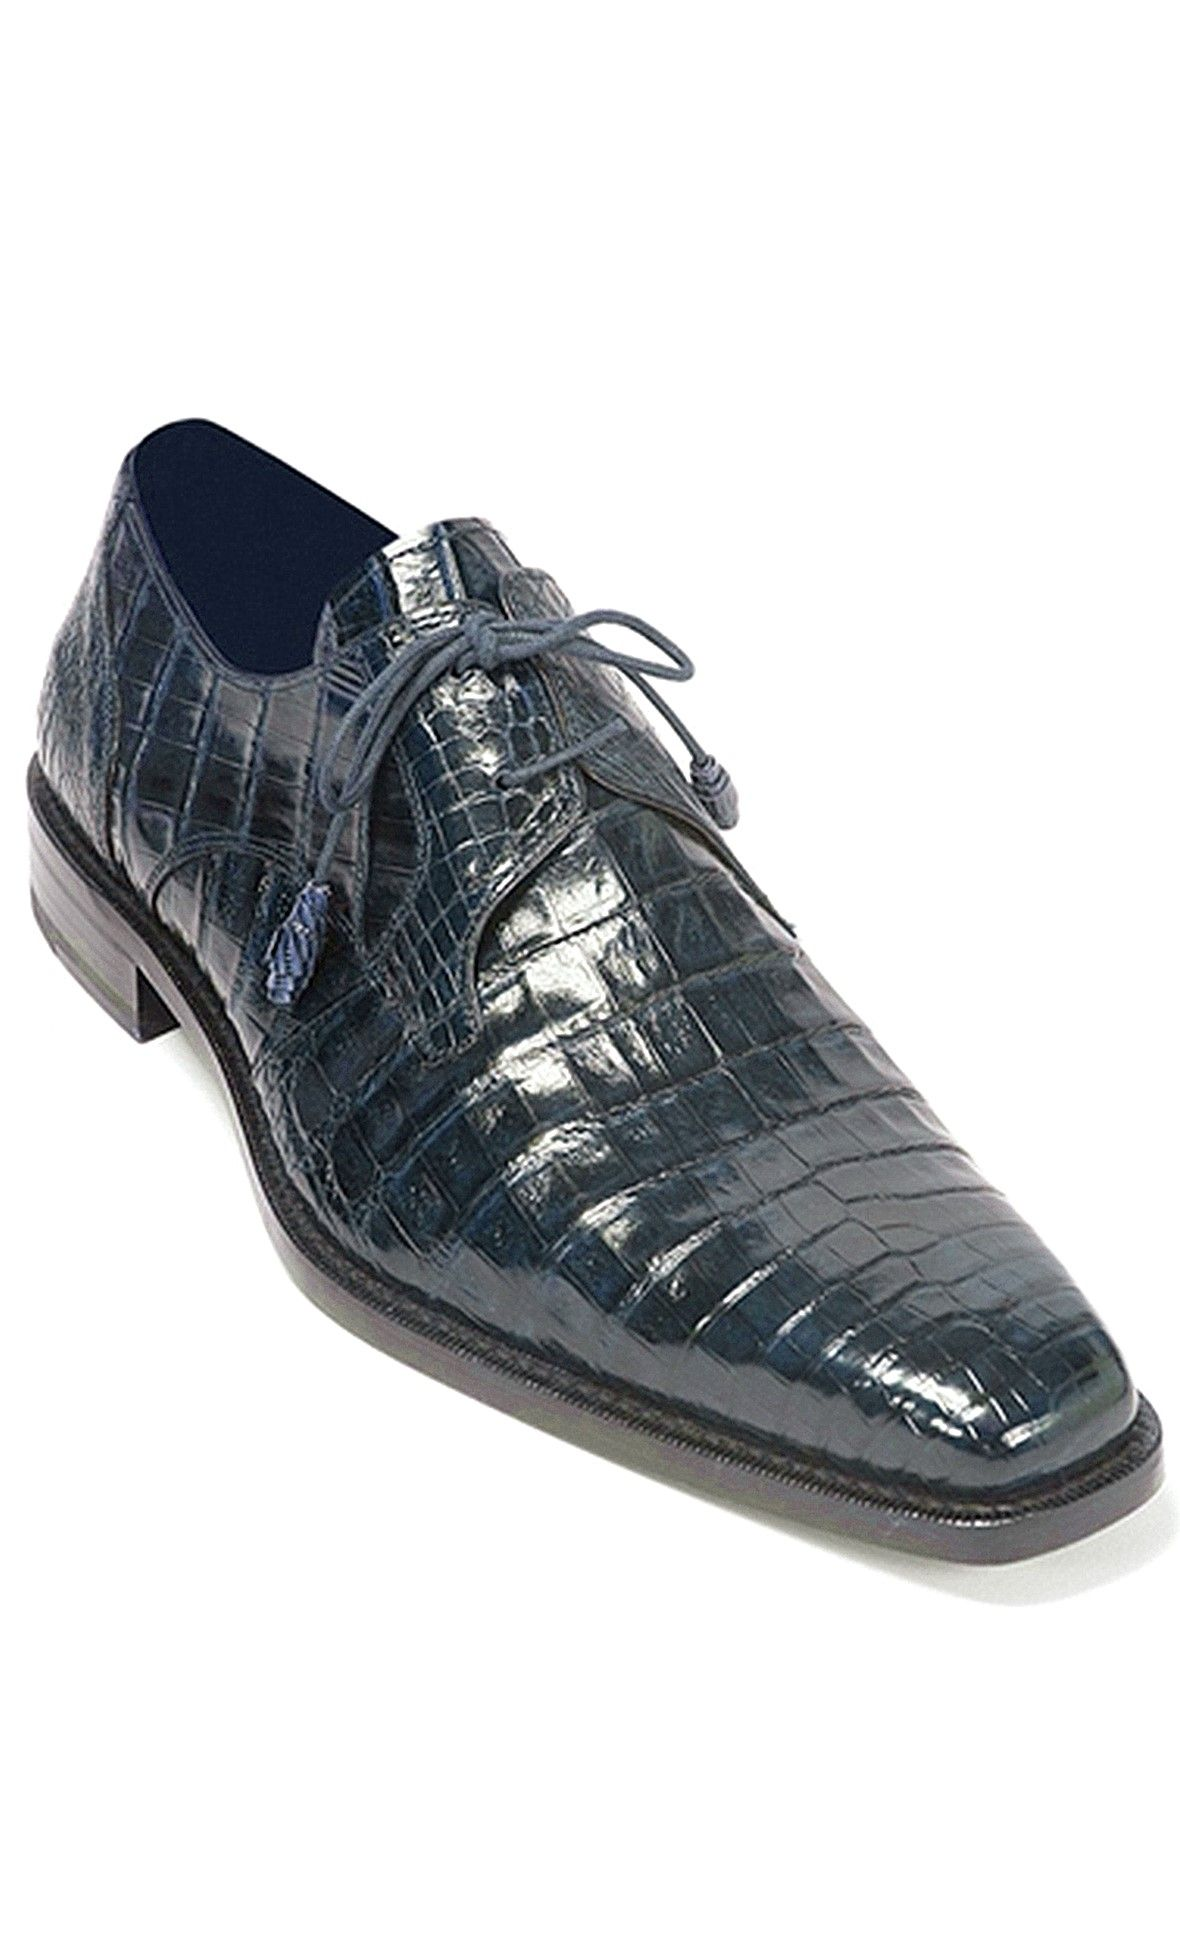 New Men Real Leather Dress Formal Shoes Crocodile Embossed Brown Black Oxfords